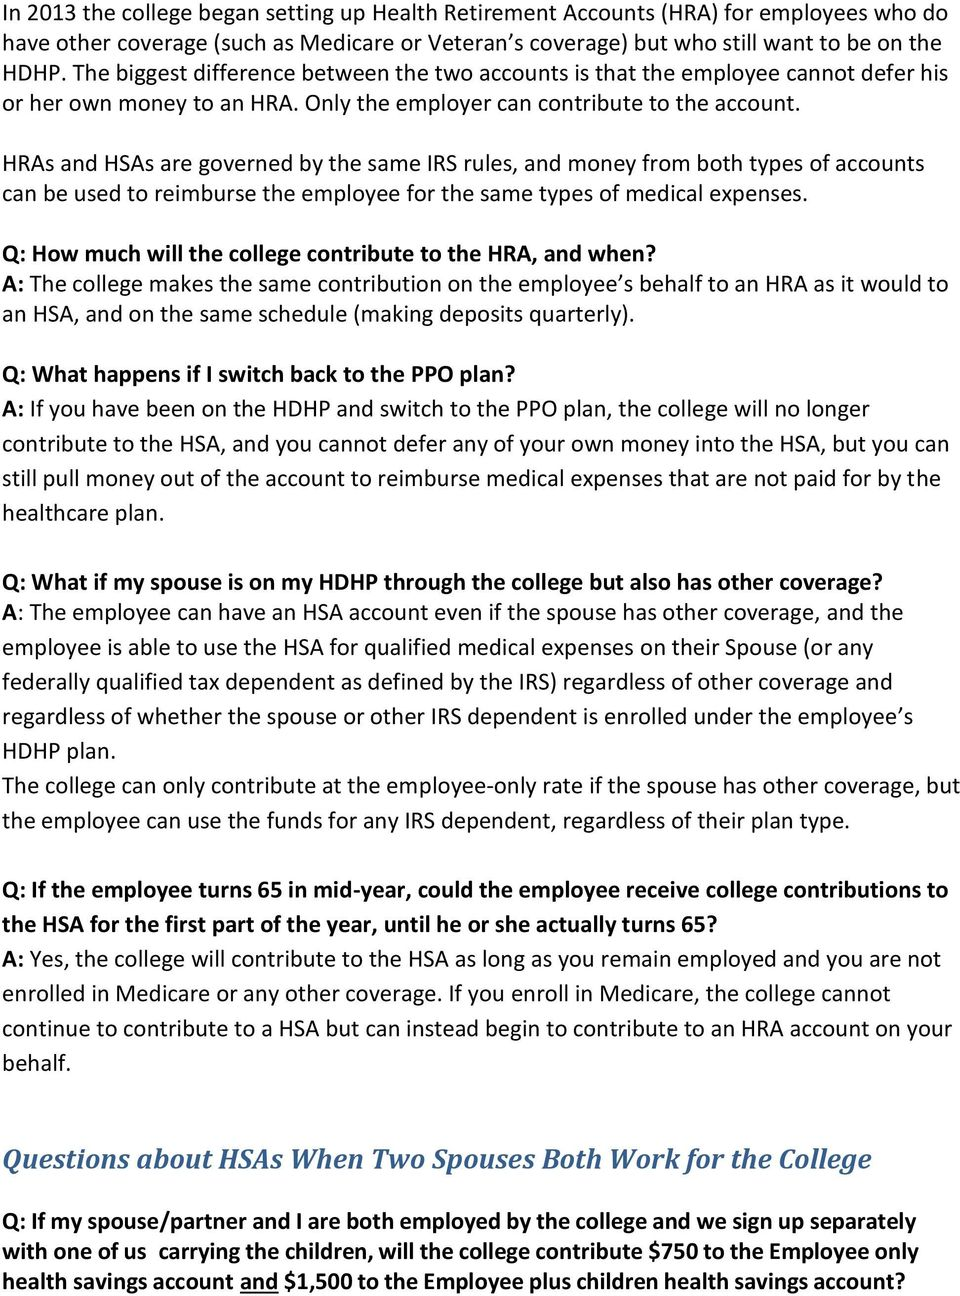 HRAs and HSAs are governed by the same IRS rules, and money from both types of accounts can be used to reimburse the employee for the same types of medical expenses.